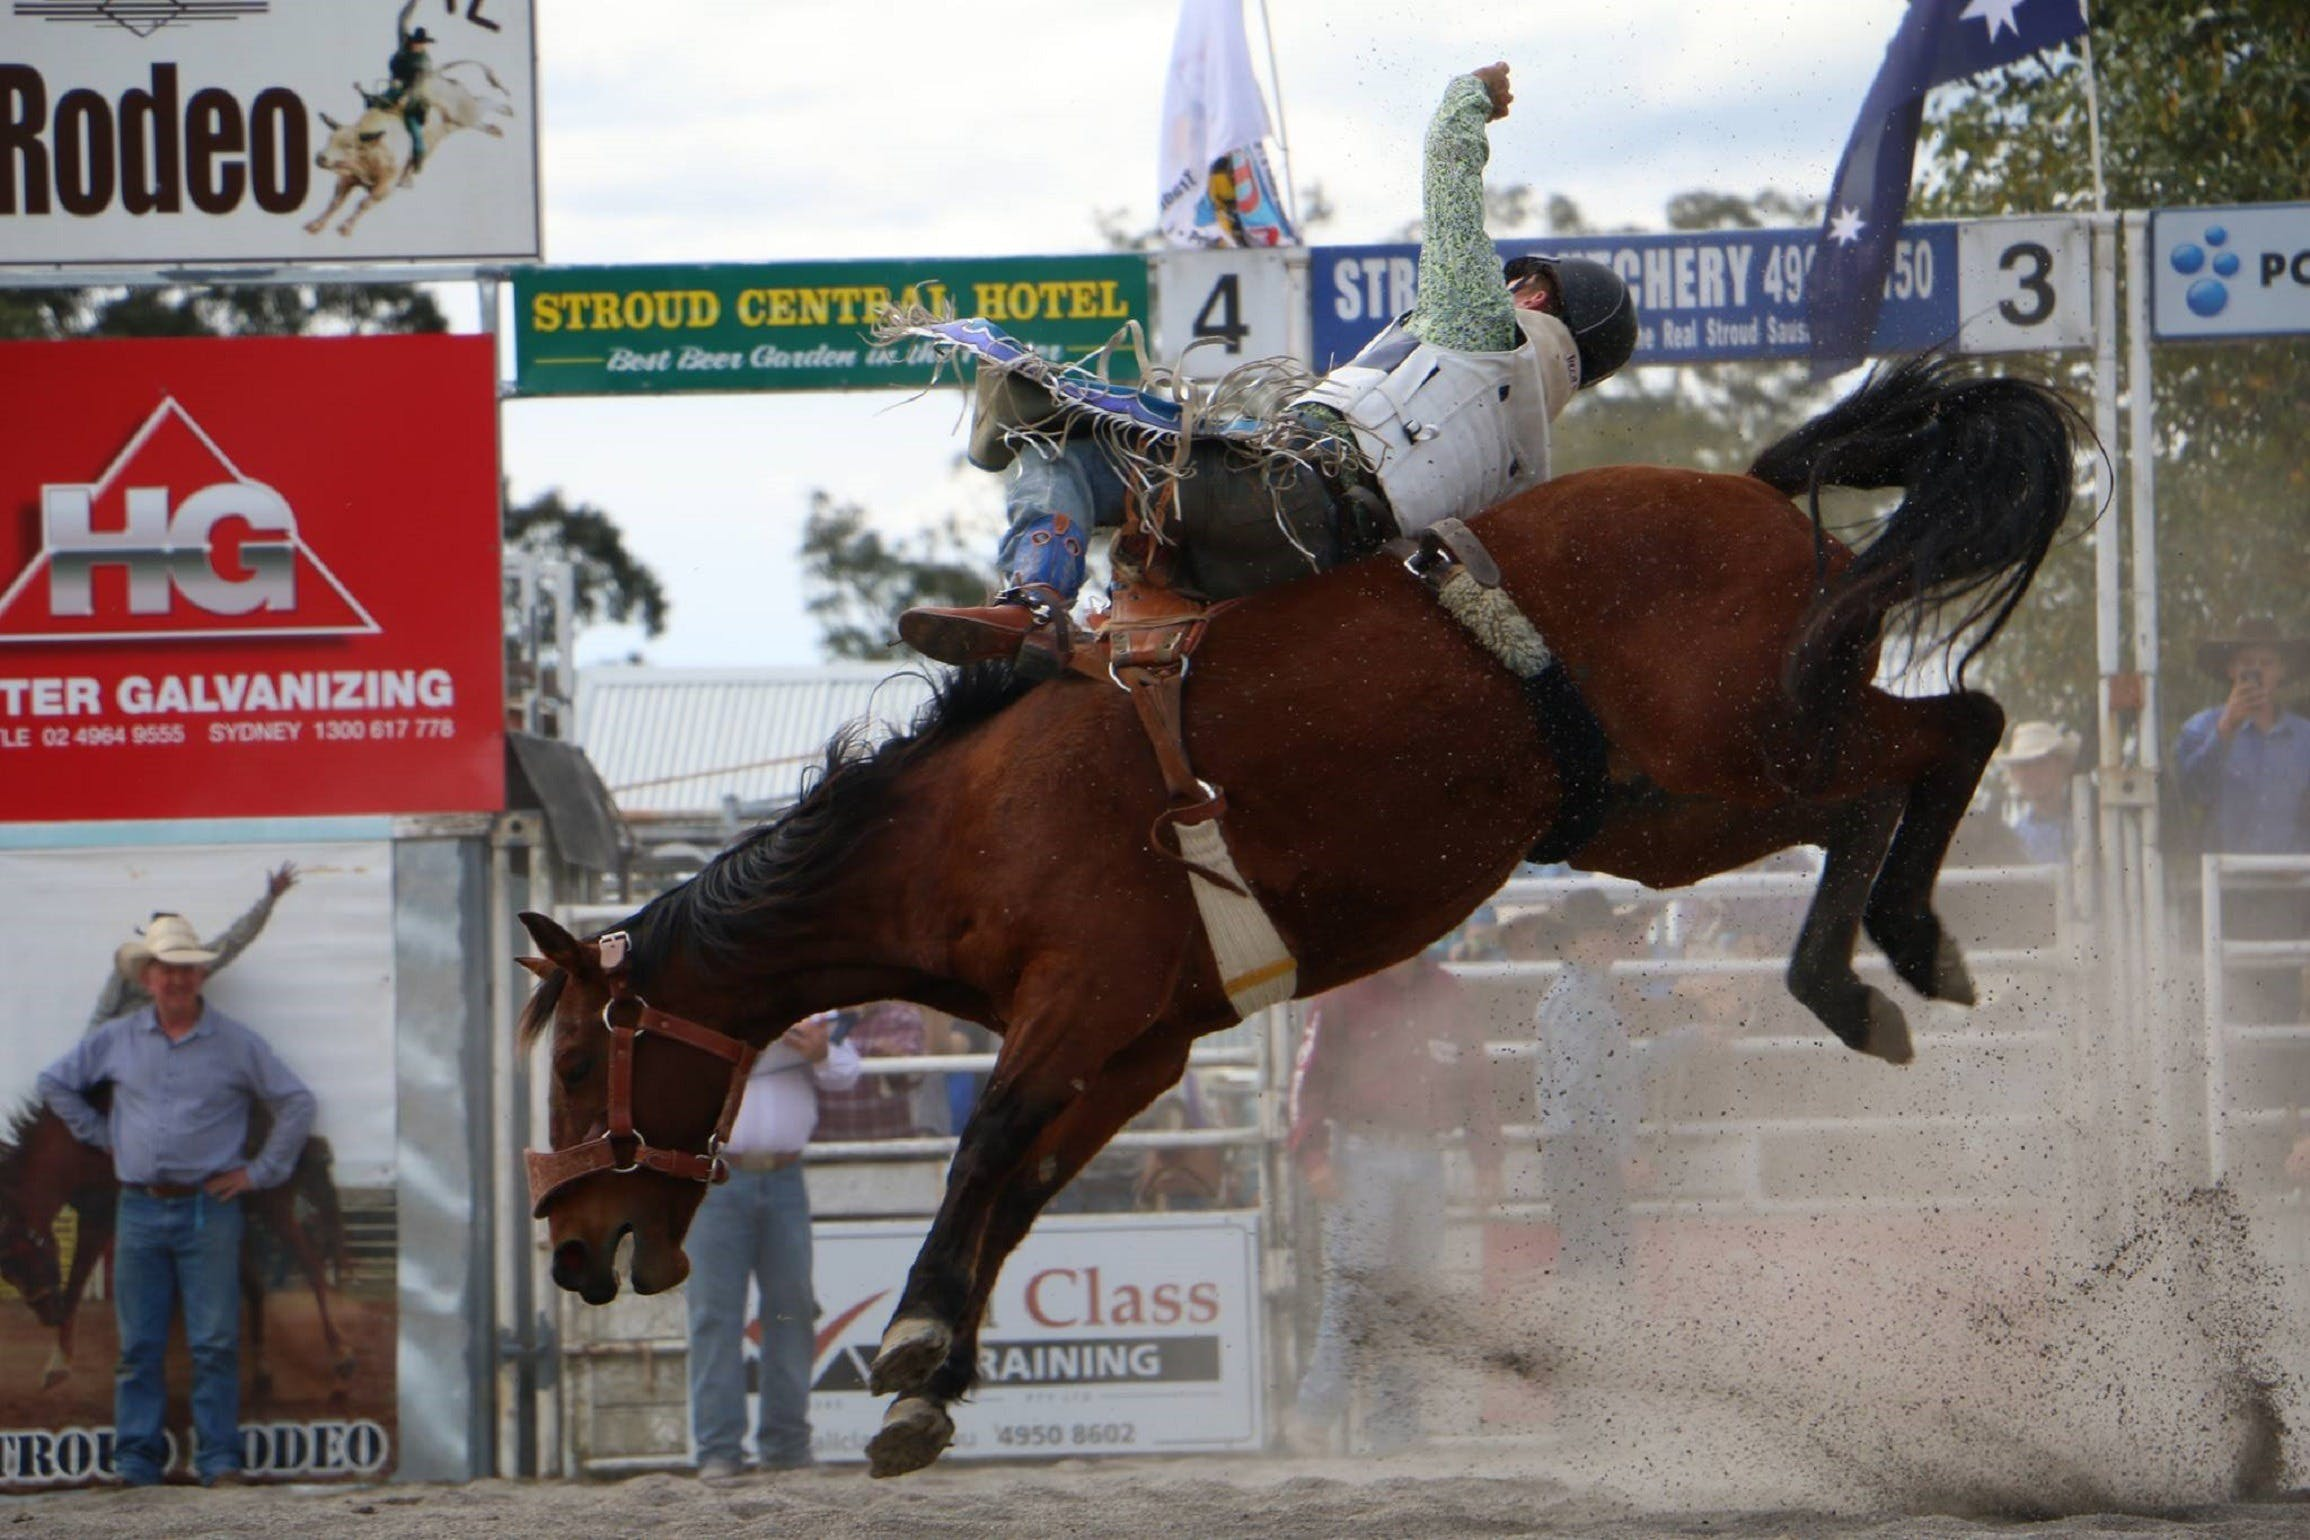 Stroud Rodeo and Campdraft - Accommodation Resorts